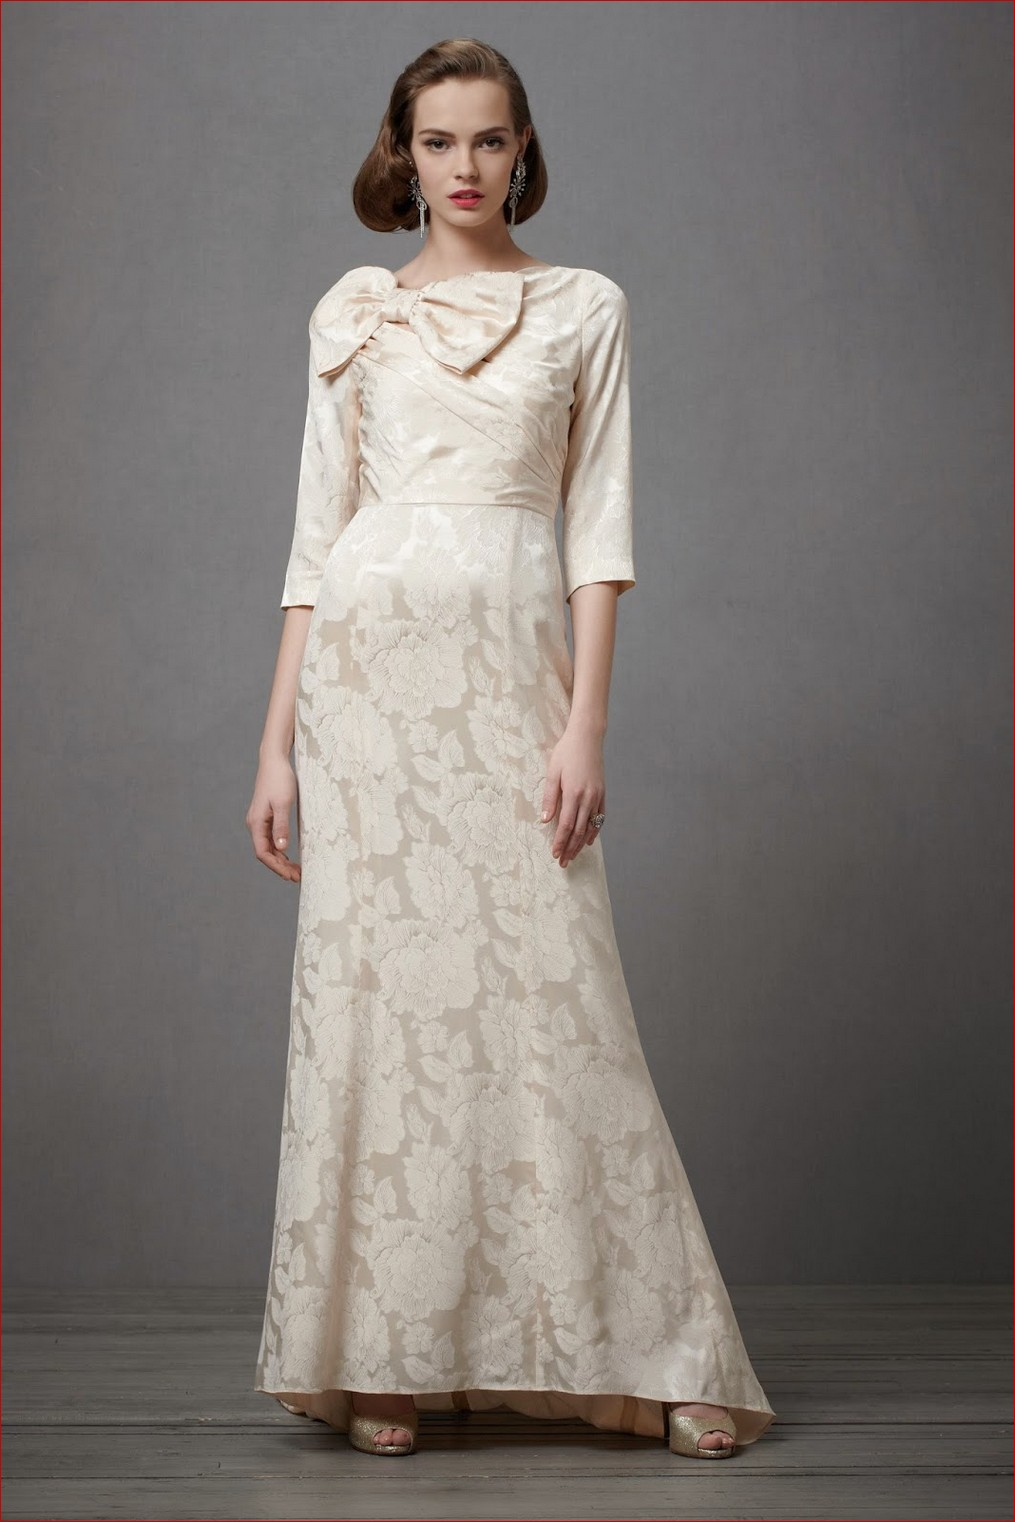 Wedding dresses for second marriages for Wedding dresses for second marriage over 40